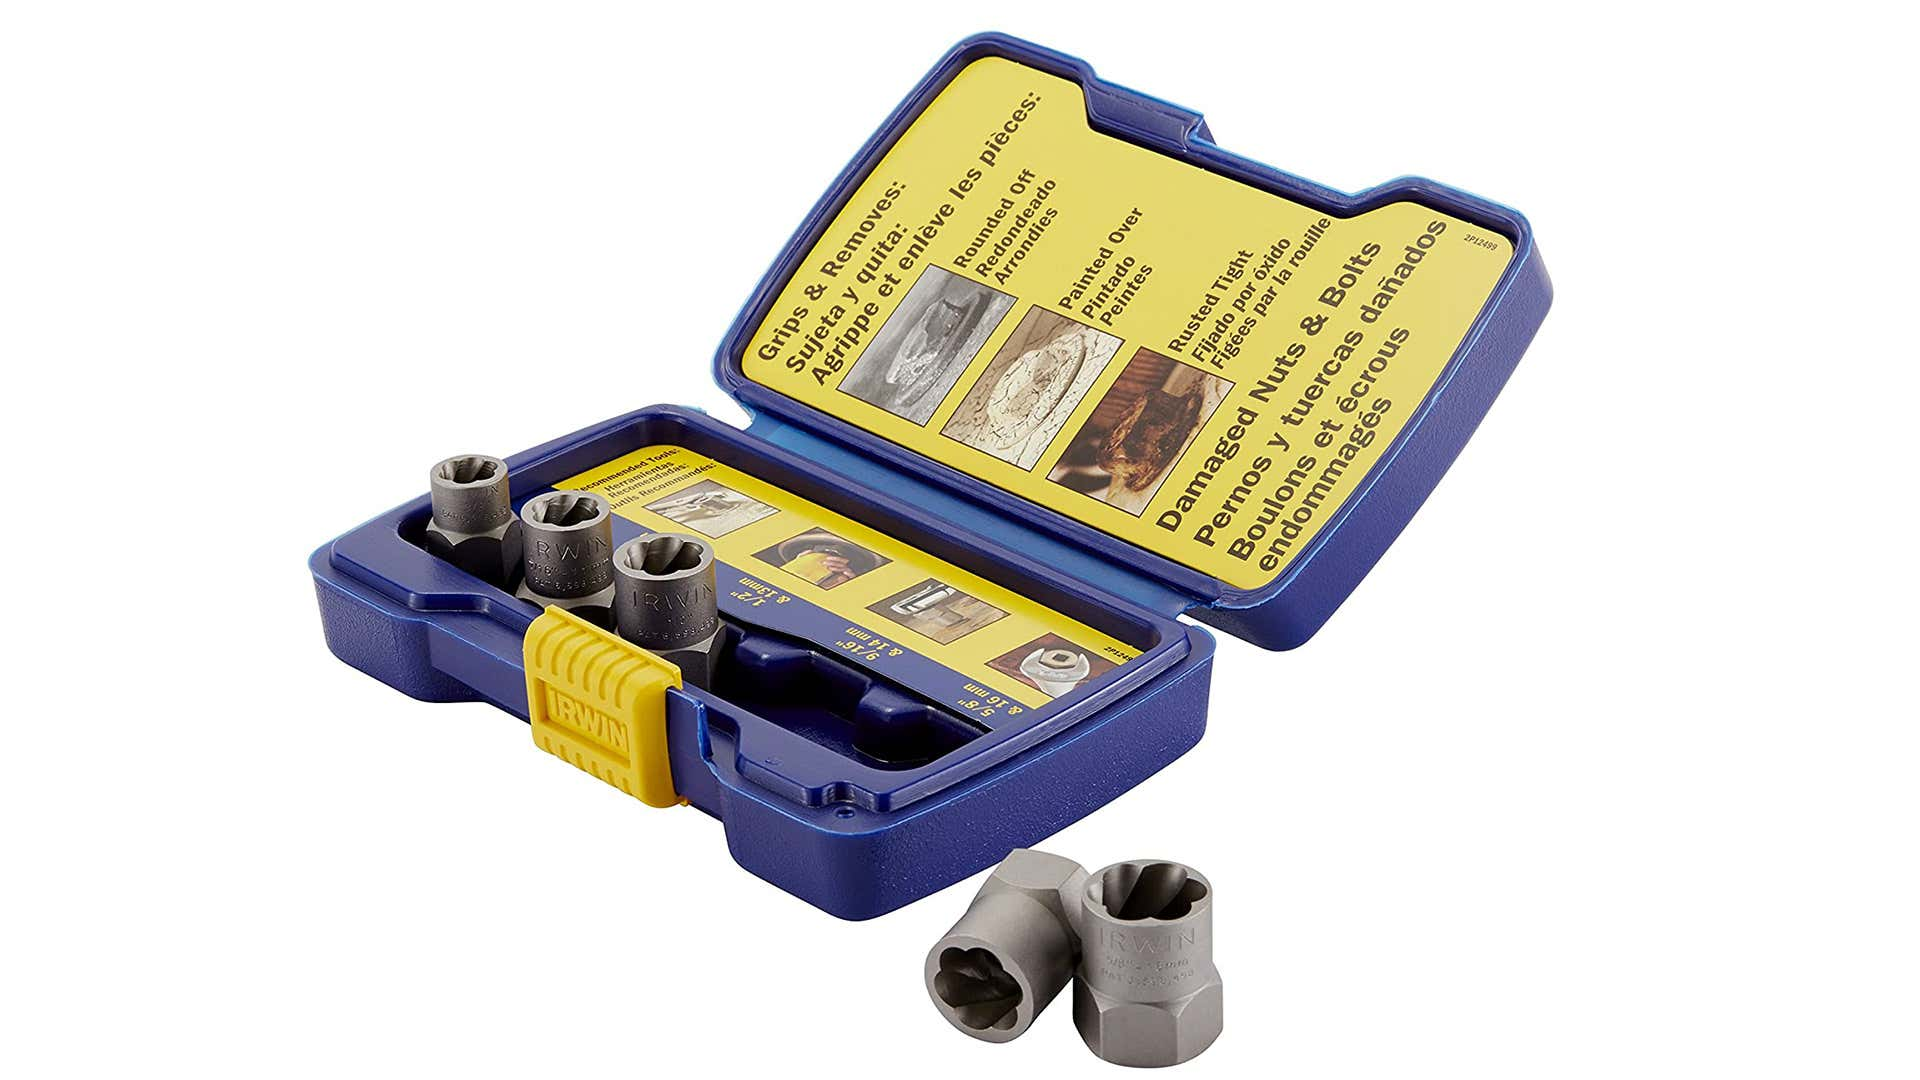 A 5-piece Irwin socket set in a blue and yellow case.